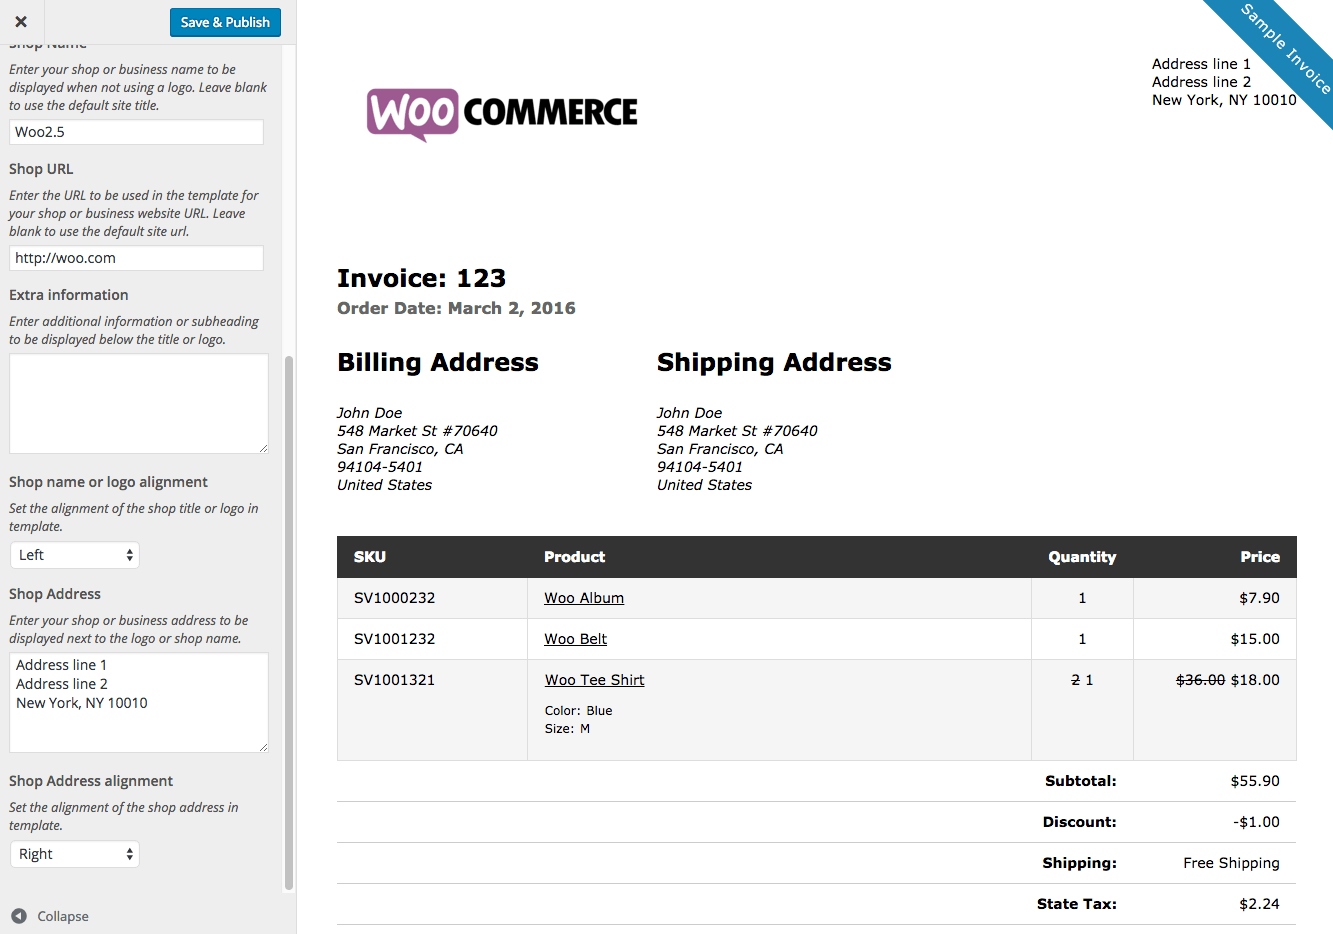 Coolmathgamesus  Wonderful Woocommerce Print Invoices Amp Packing Lists  Woocommerce Docs With Foxy Woocommerce Print Invoices  Packing Lists Customizer With Agreeable Personal Property Receipt Also Registered Mail Receipt In Addition Free Cash Receipt Template Word And Best Receipt Scanner Software As Well As Rent Receipt Maker Additionally Receipt Templet From Docswoocommercecom With Coolmathgamesus  Foxy Woocommerce Print Invoices Amp Packing Lists  Woocommerce Docs With Agreeable Woocommerce Print Invoices  Packing Lists Customizer And Wonderful Personal Property Receipt Also Registered Mail Receipt In Addition Free Cash Receipt Template Word From Docswoocommercecom